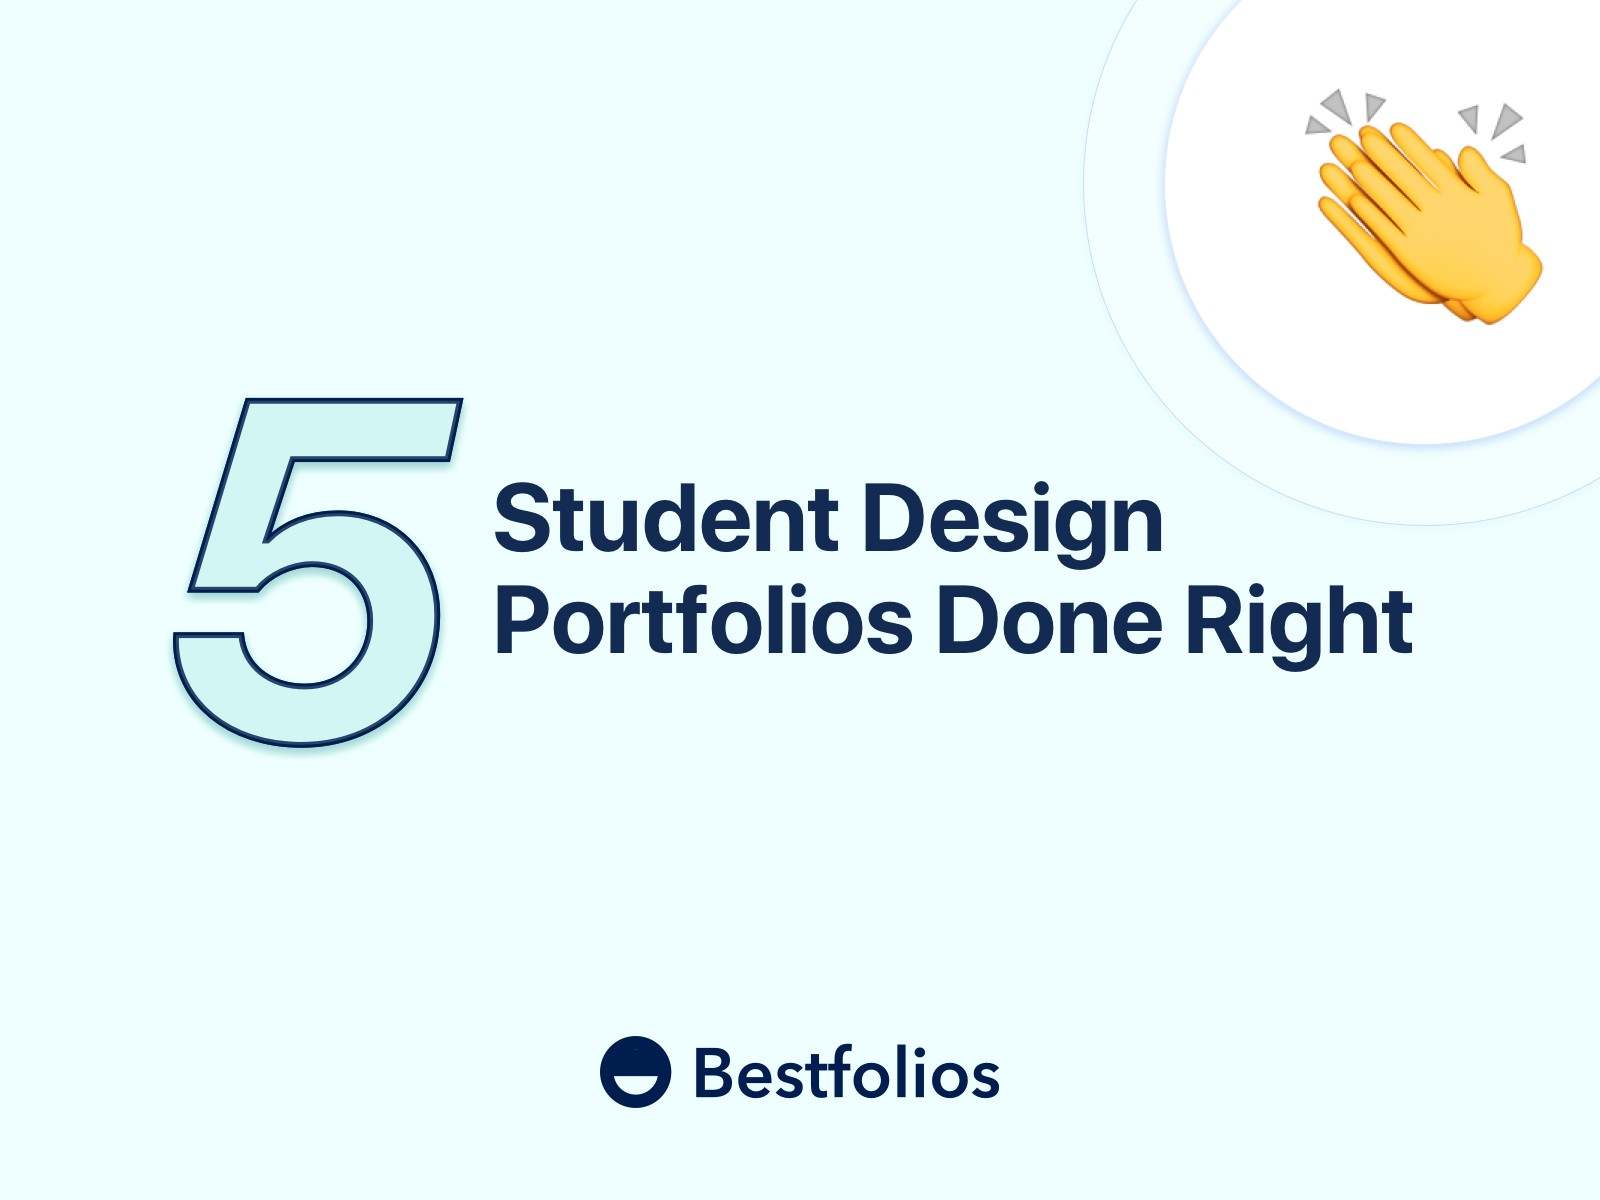 5 student design portfolios done right - bestfolios